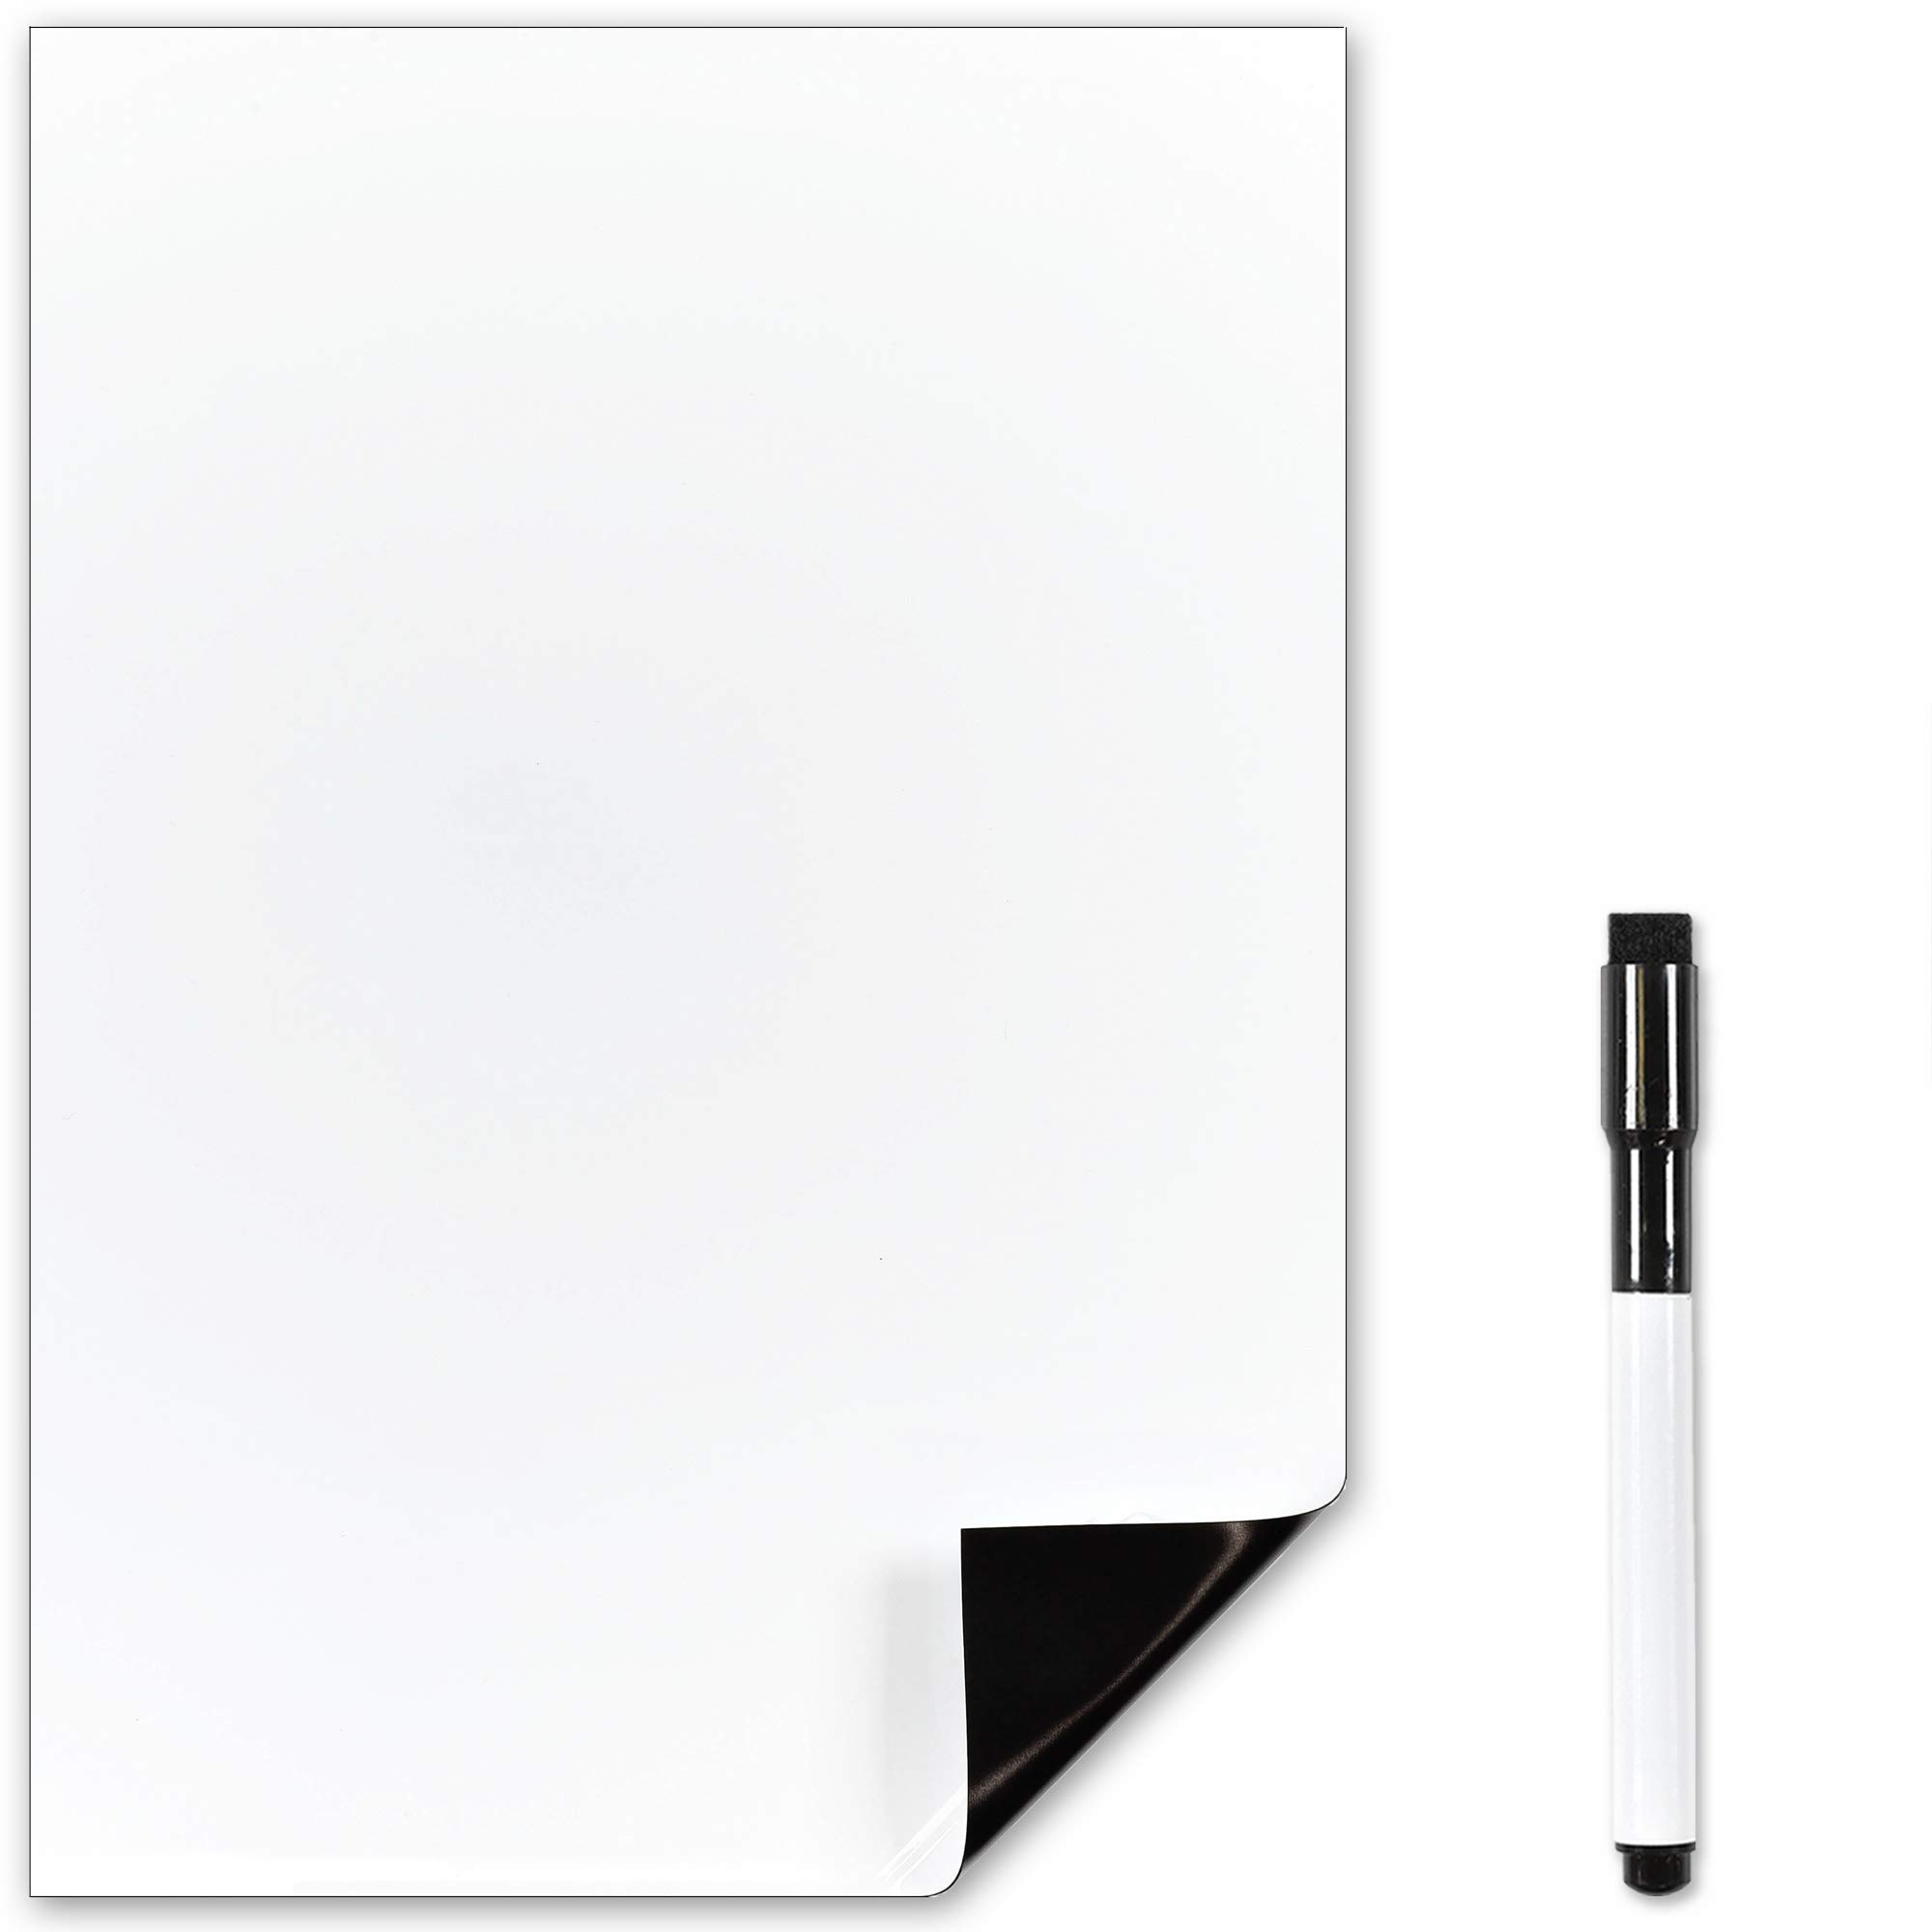 The Magnet Shop Magnetic Whiteboard - For Memos, Notes and Meal Planning in Your Home, Office and Kitchen - A4